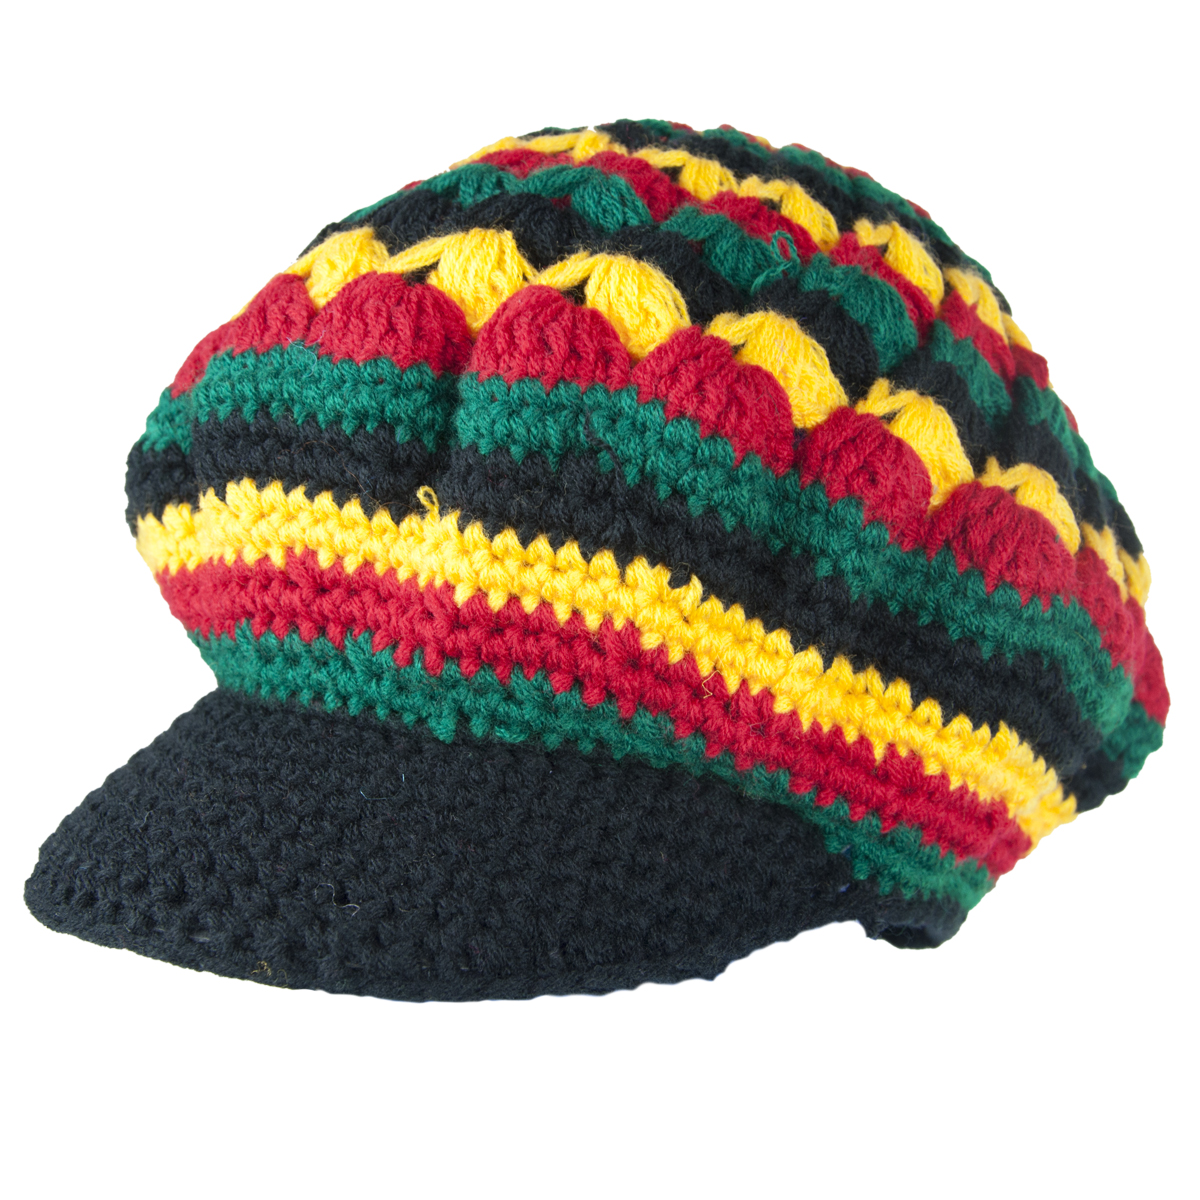 Knitting Patterns For Rasta Hats : Exodus Rasta Wool Knit Brim Hat RastaEmpire.com